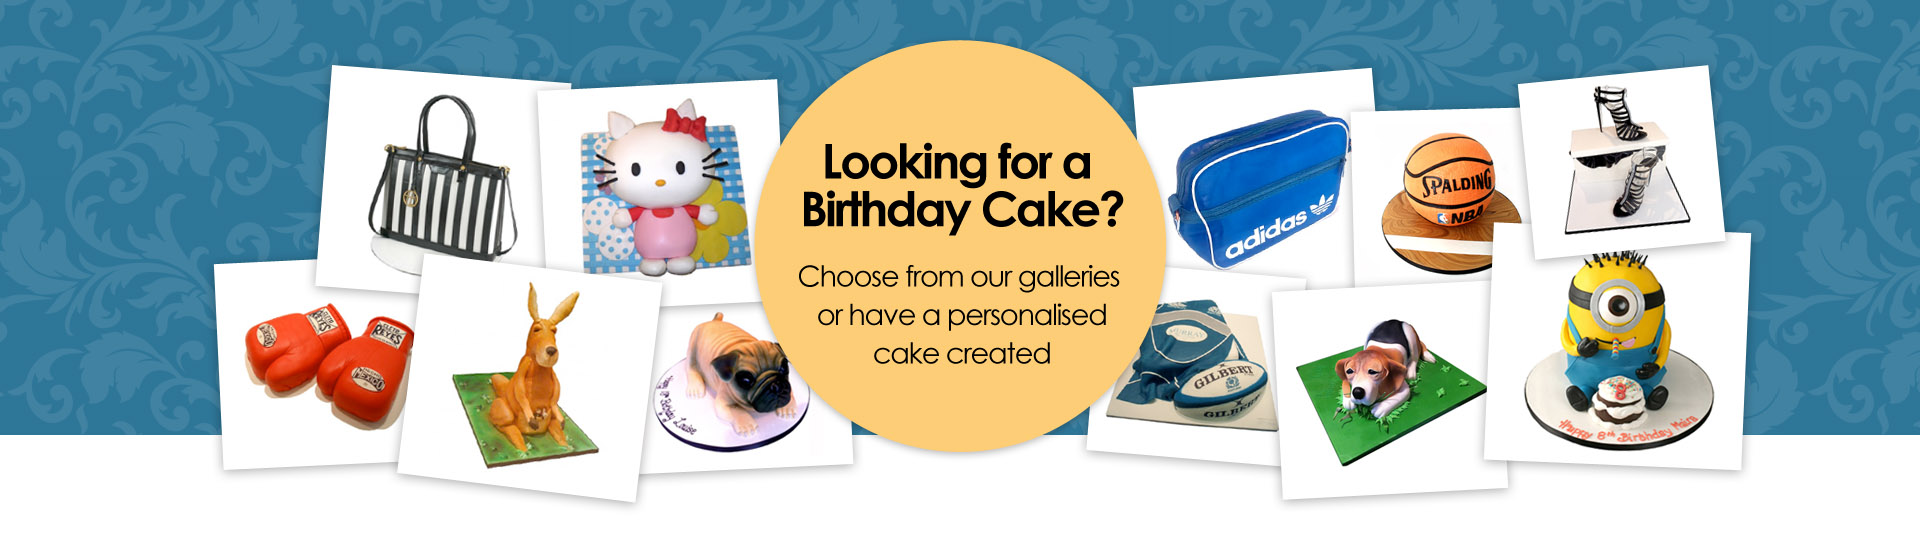 Cake Decorating Classes Central Scotland : Video 3D CAKE DECORATING CLASSES EDINBURGH 738